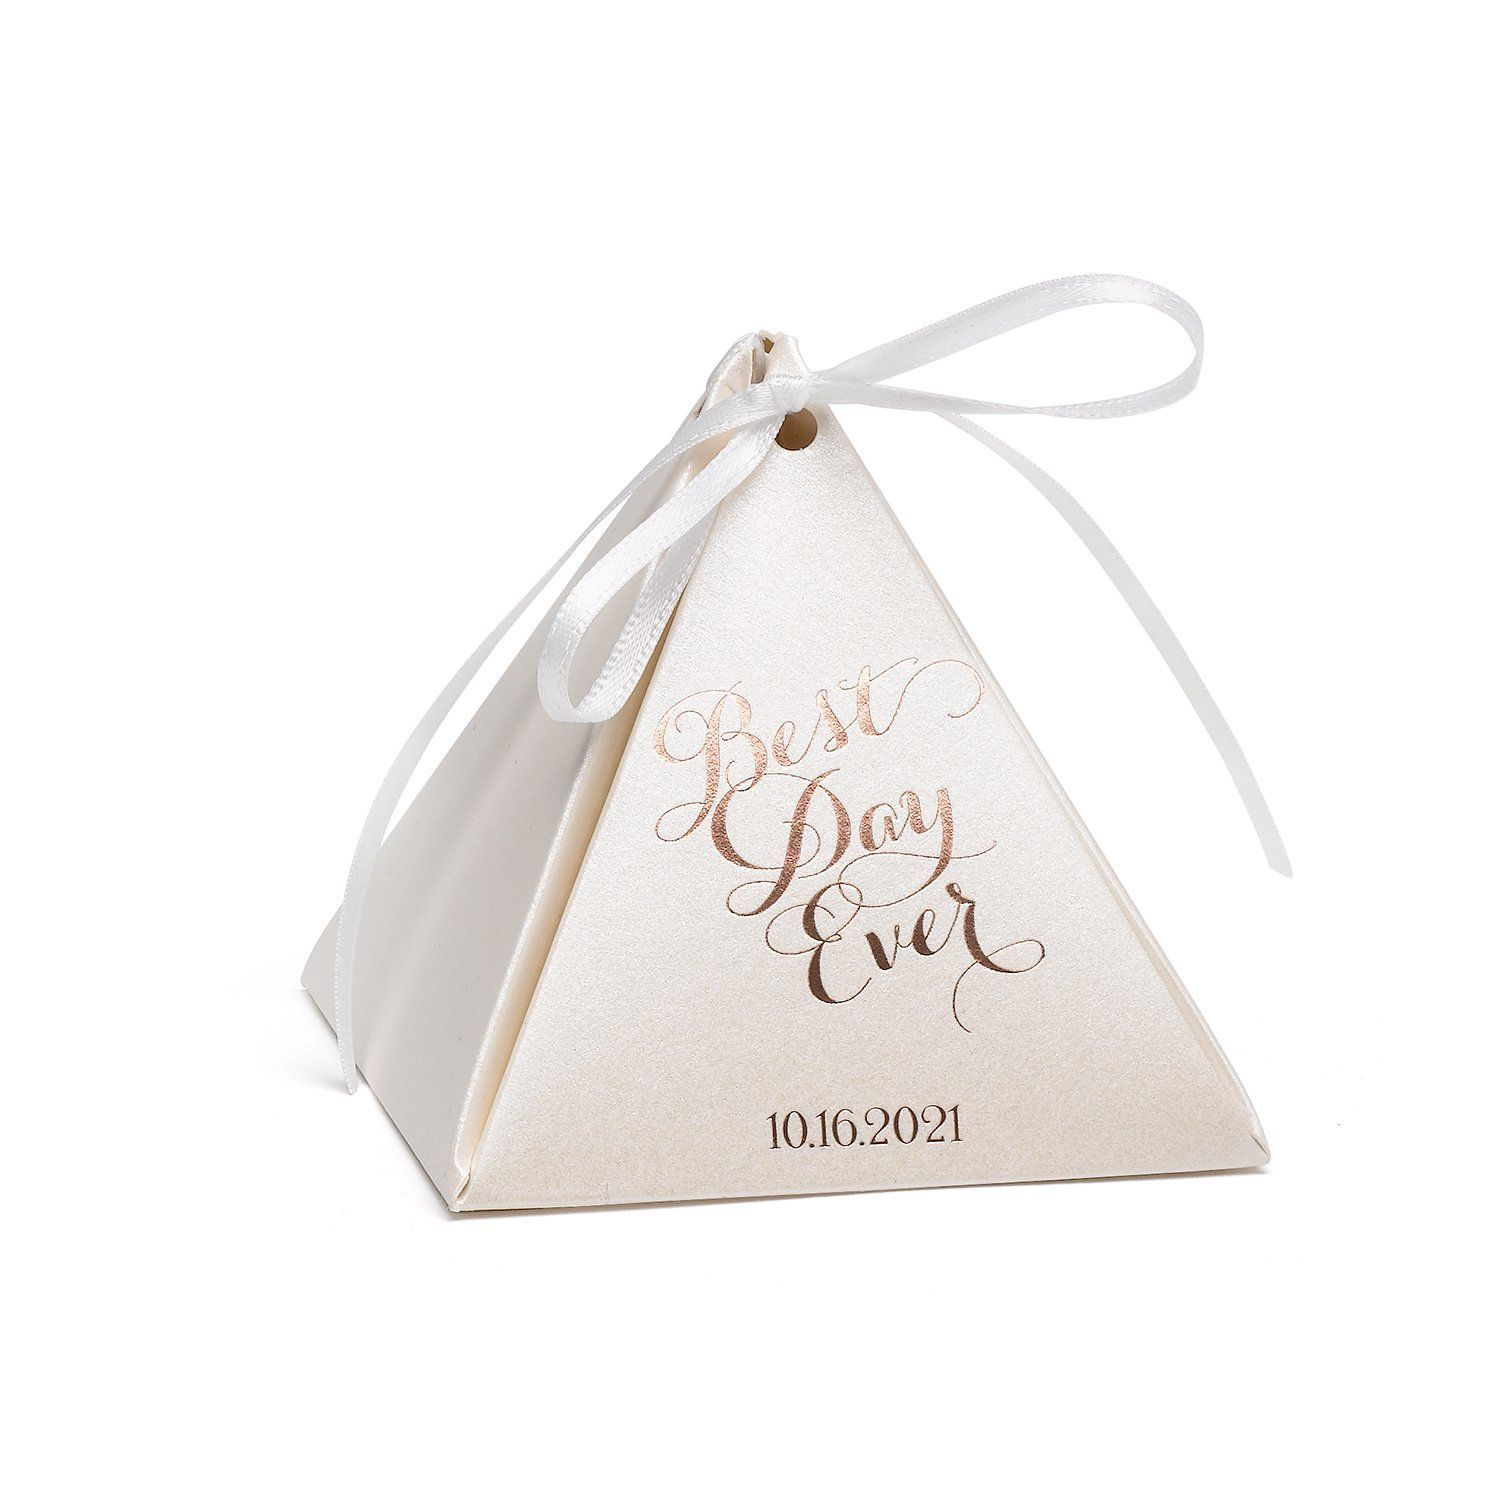 Personalized Ecru Shimmer Pyramid Favor Box - Best Day Ever | Products